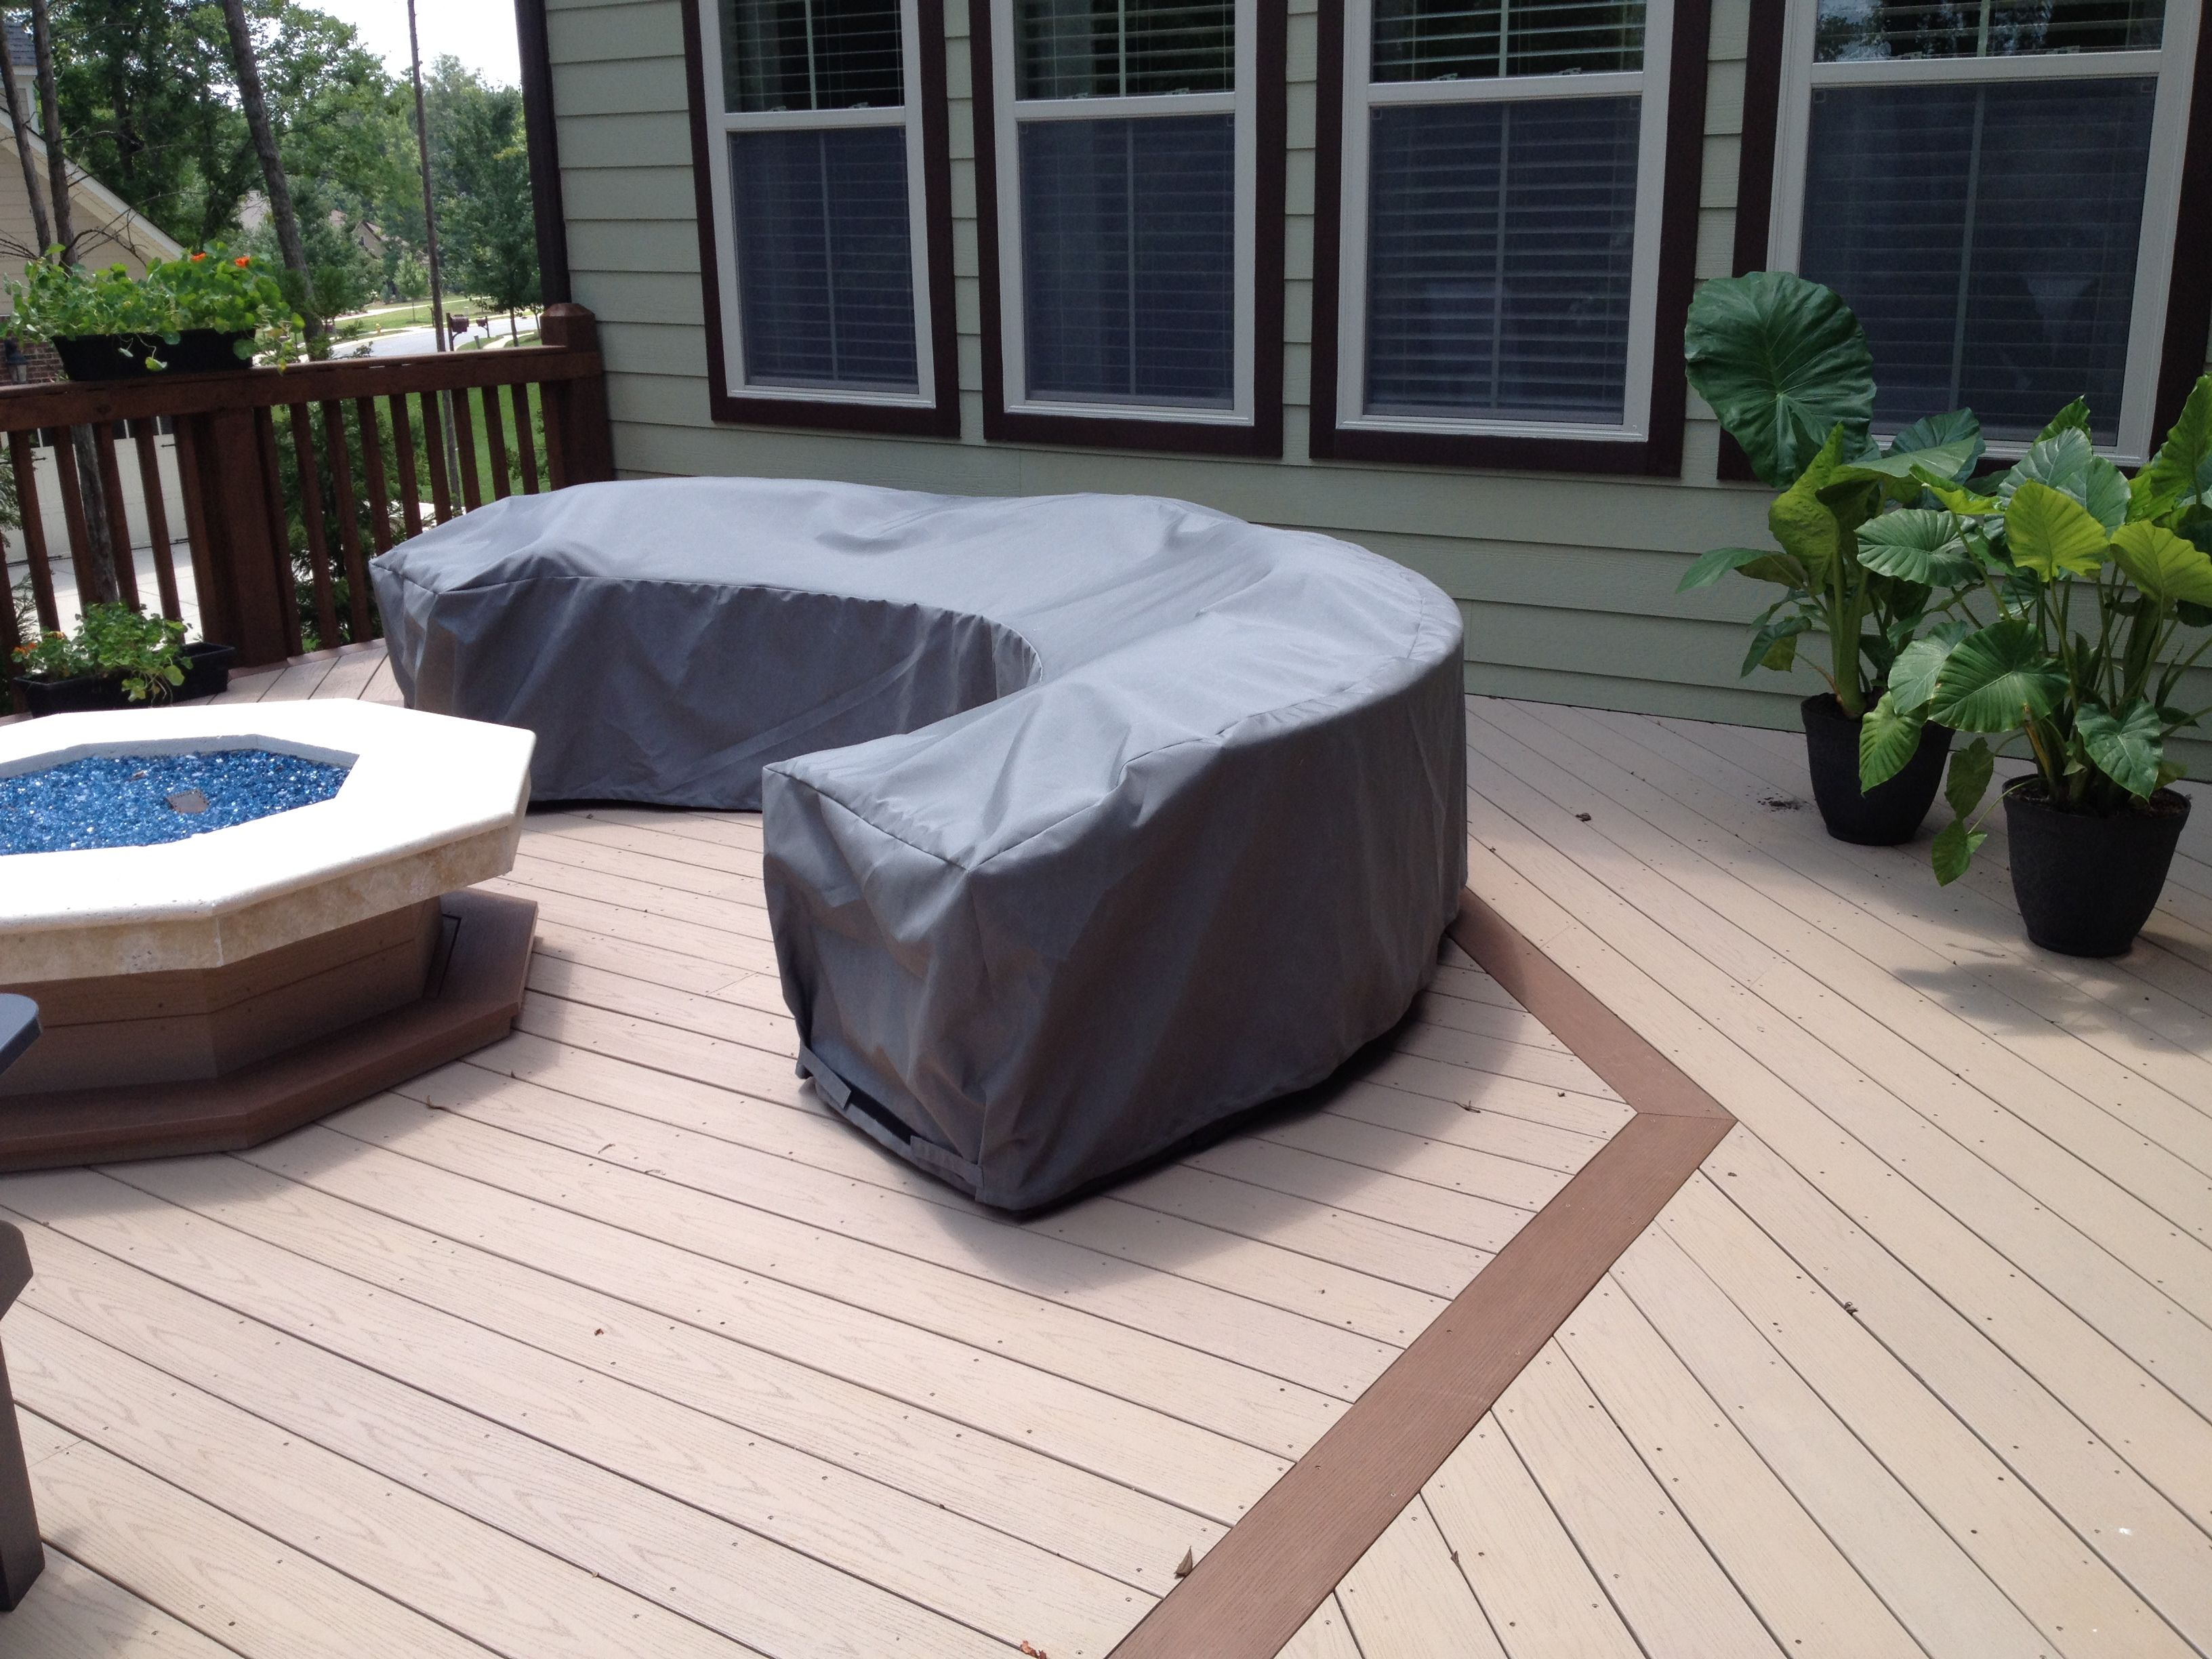 Wicker Furniture Covers Curved Sectional Cover Outdoor Fire Pit And Area Outdoor